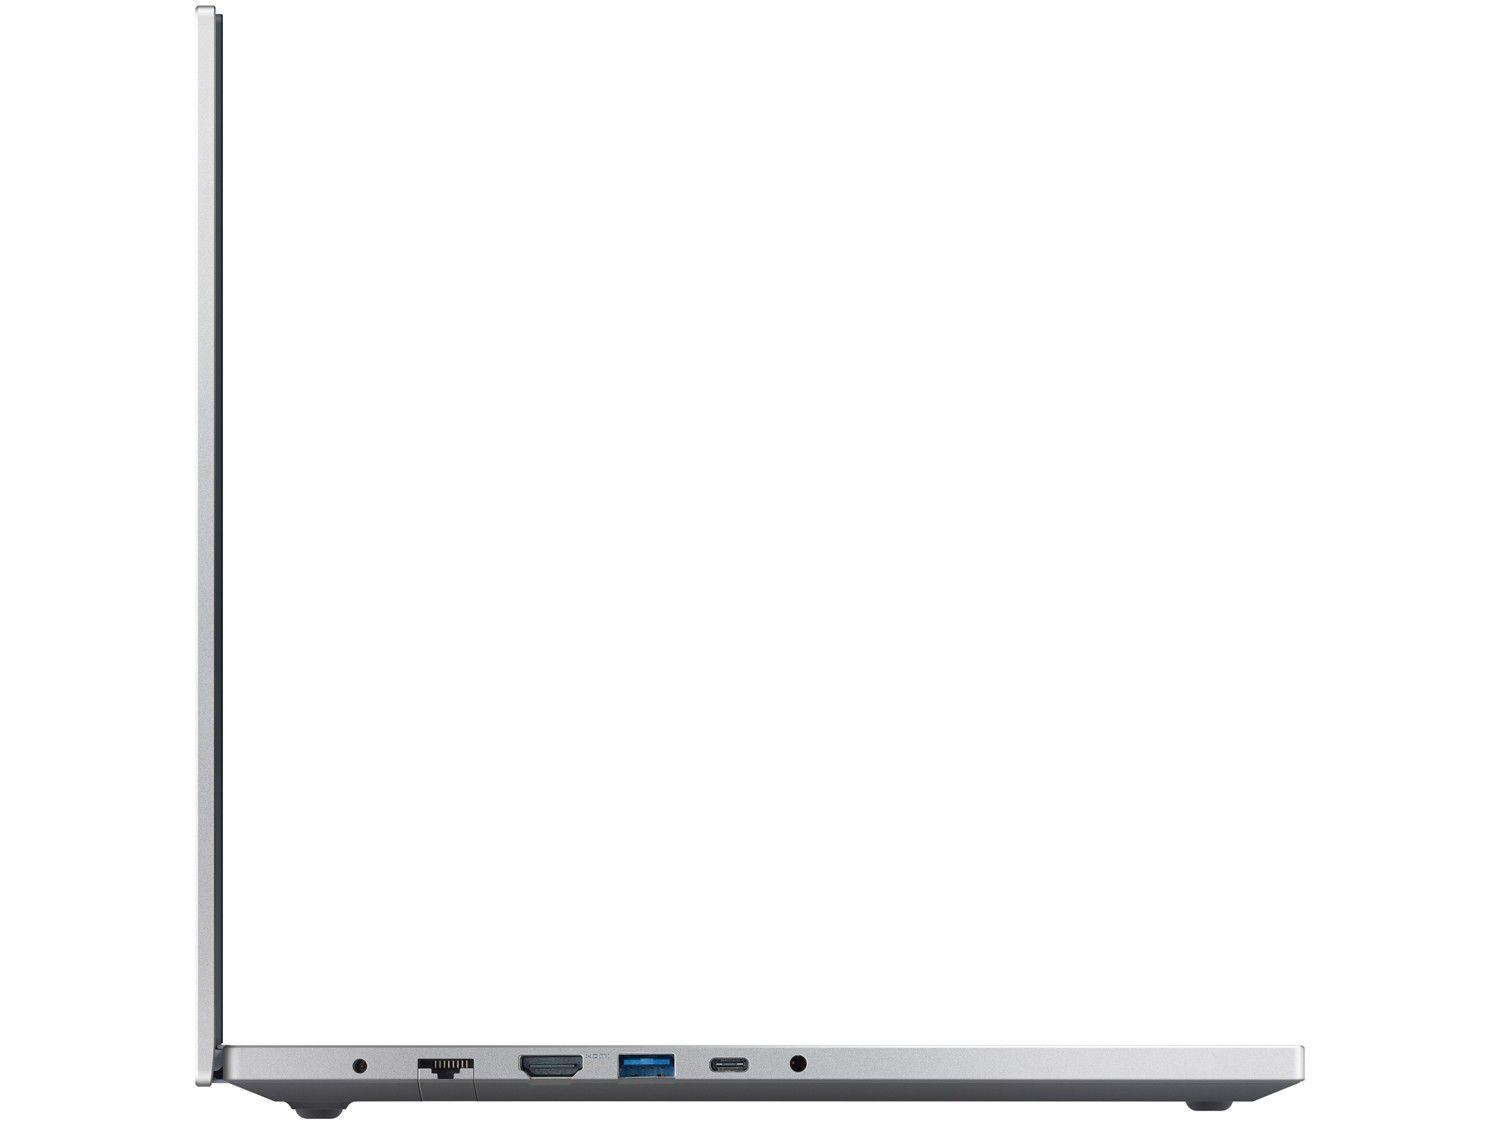 "NOTEBOOK SAMSUNG X40 INTEL CORE I5-10210U, 8GBV DDR4, GEFORCE MX110, 1TB HD, 15,6"", PRATA"